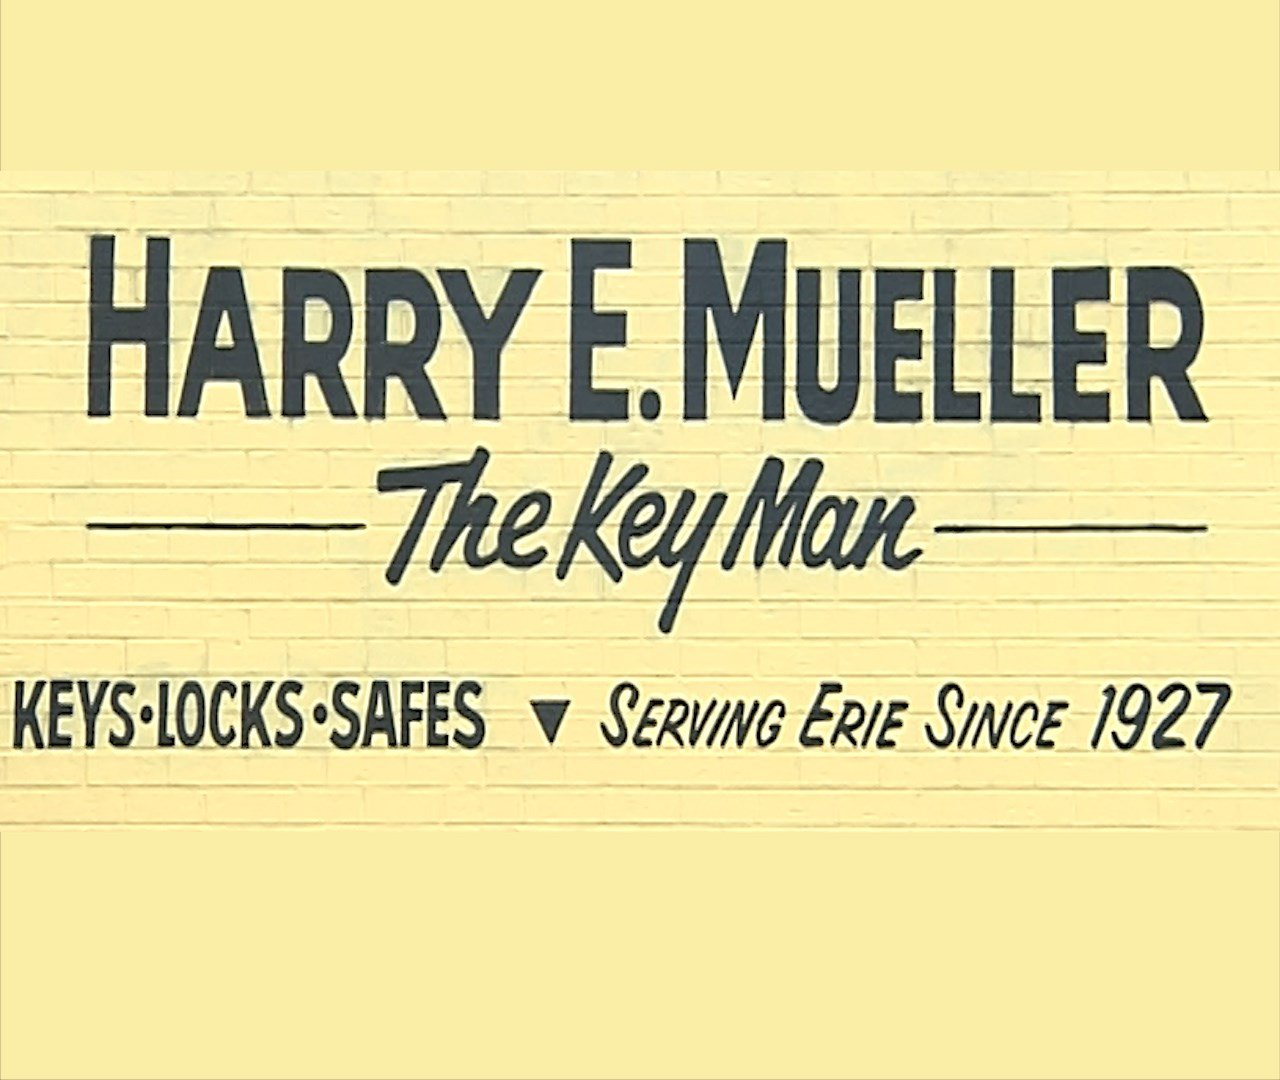 Harry Mueller the Key Man